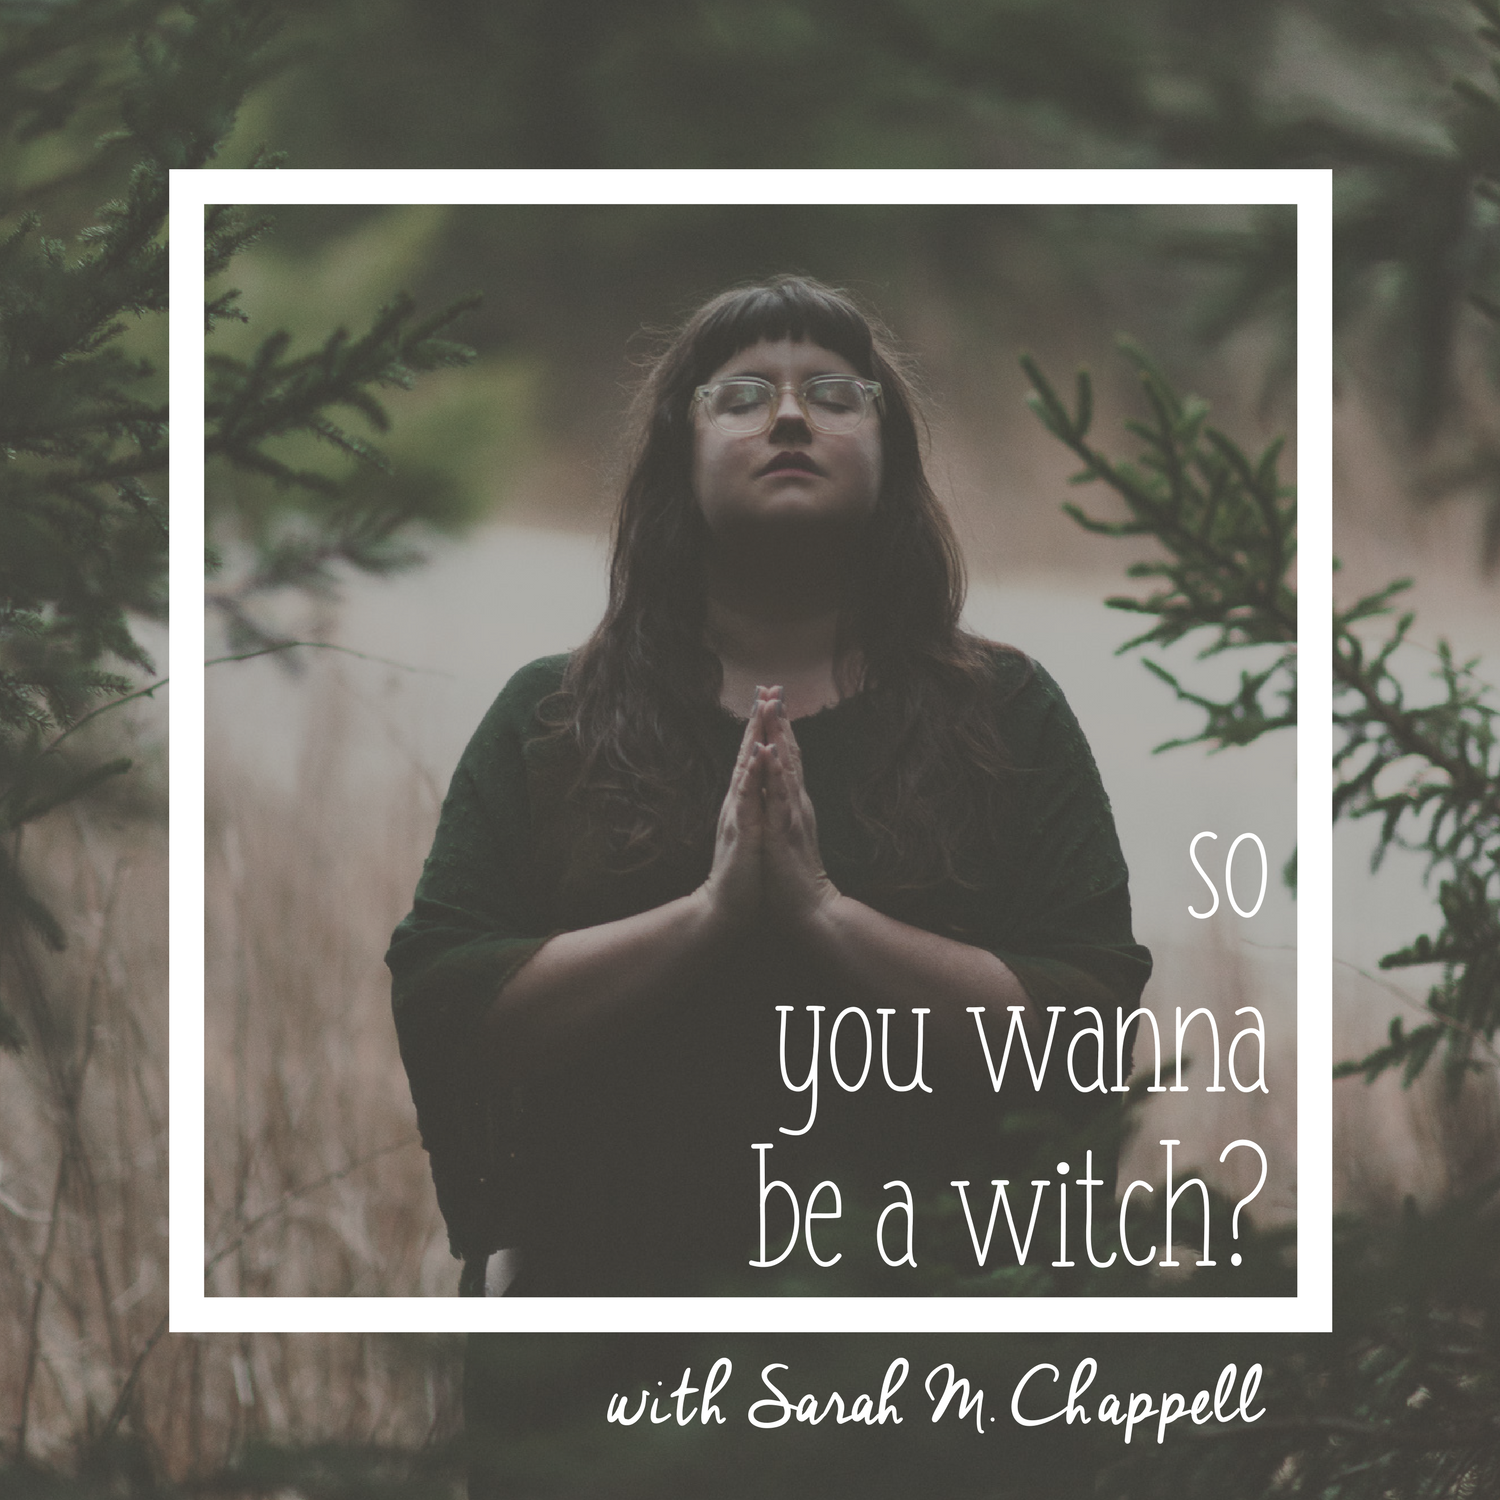 So You Wanna Be A Witch